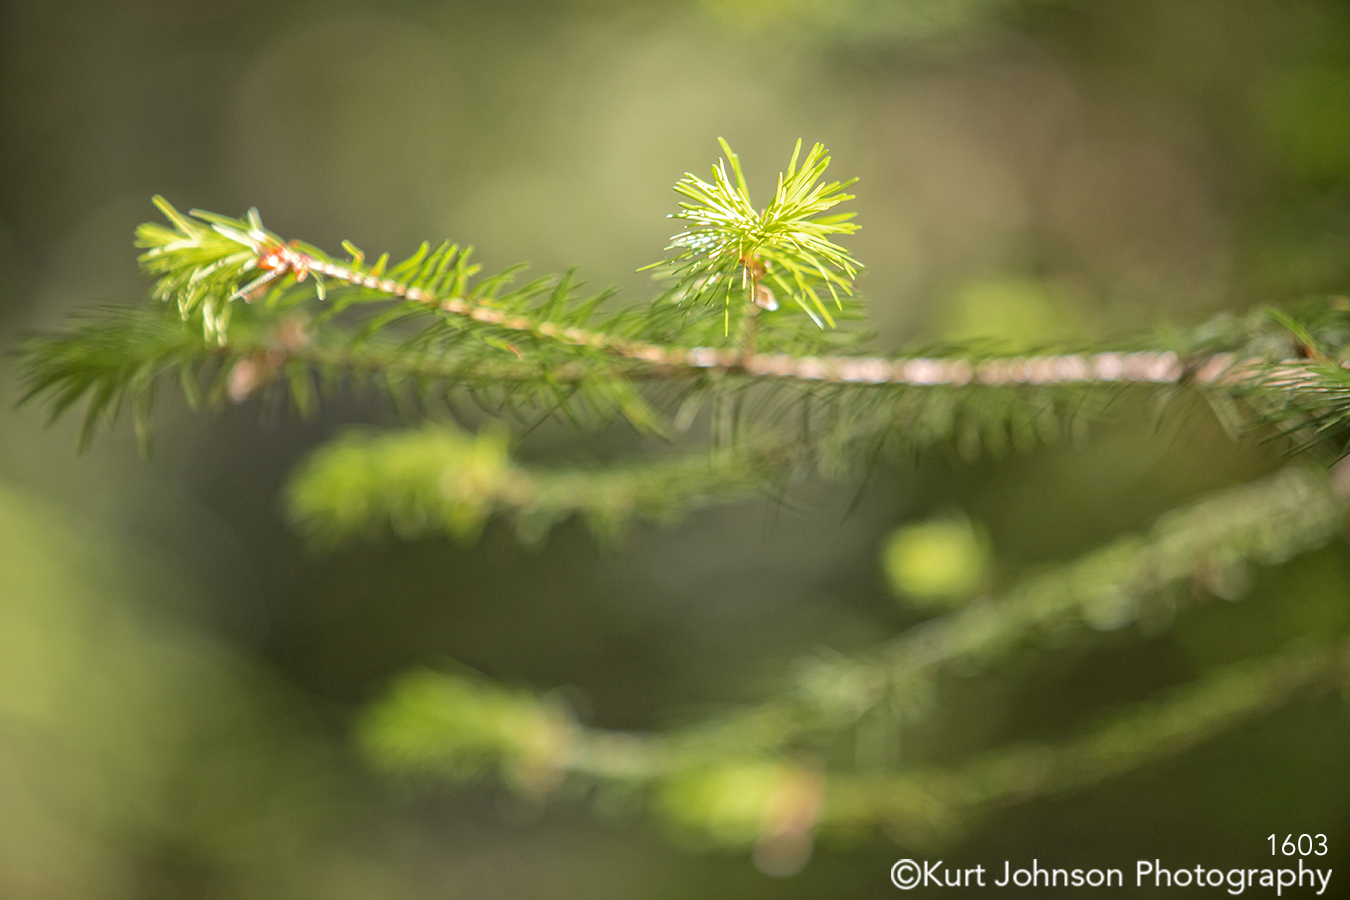 green tree branch evergreen trees pine needle forest close up macro detail